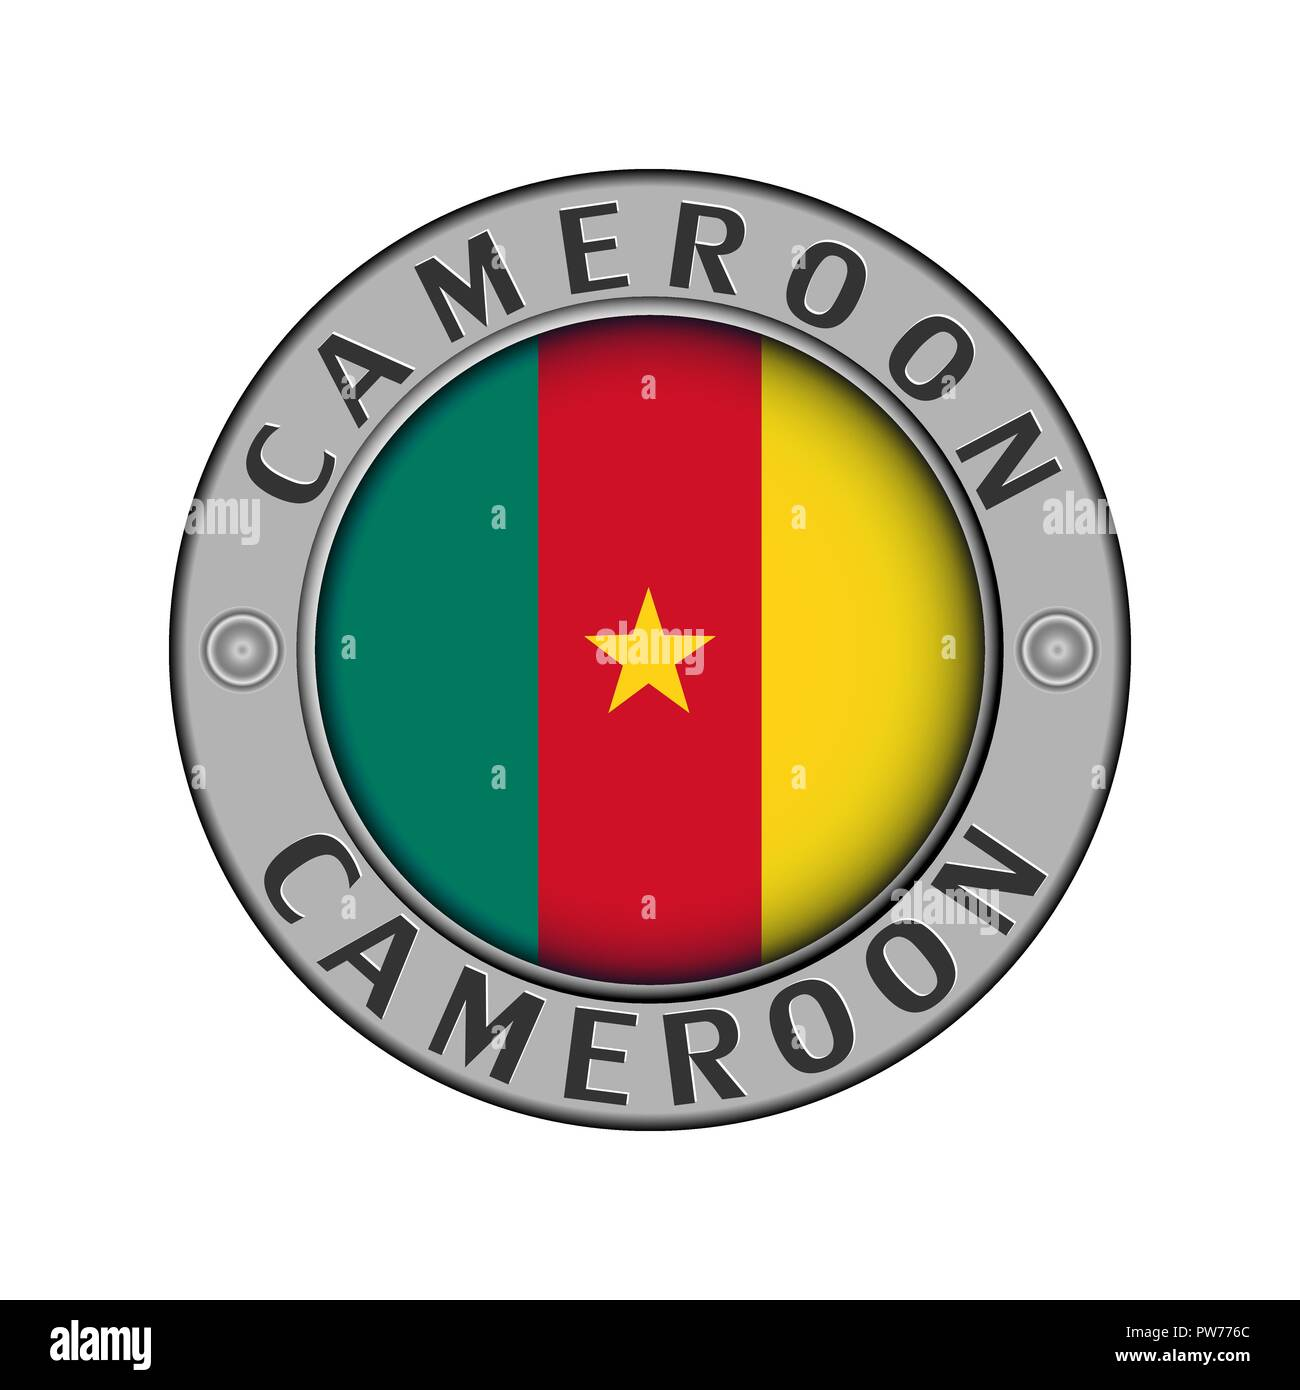 Image result for Cameroon name